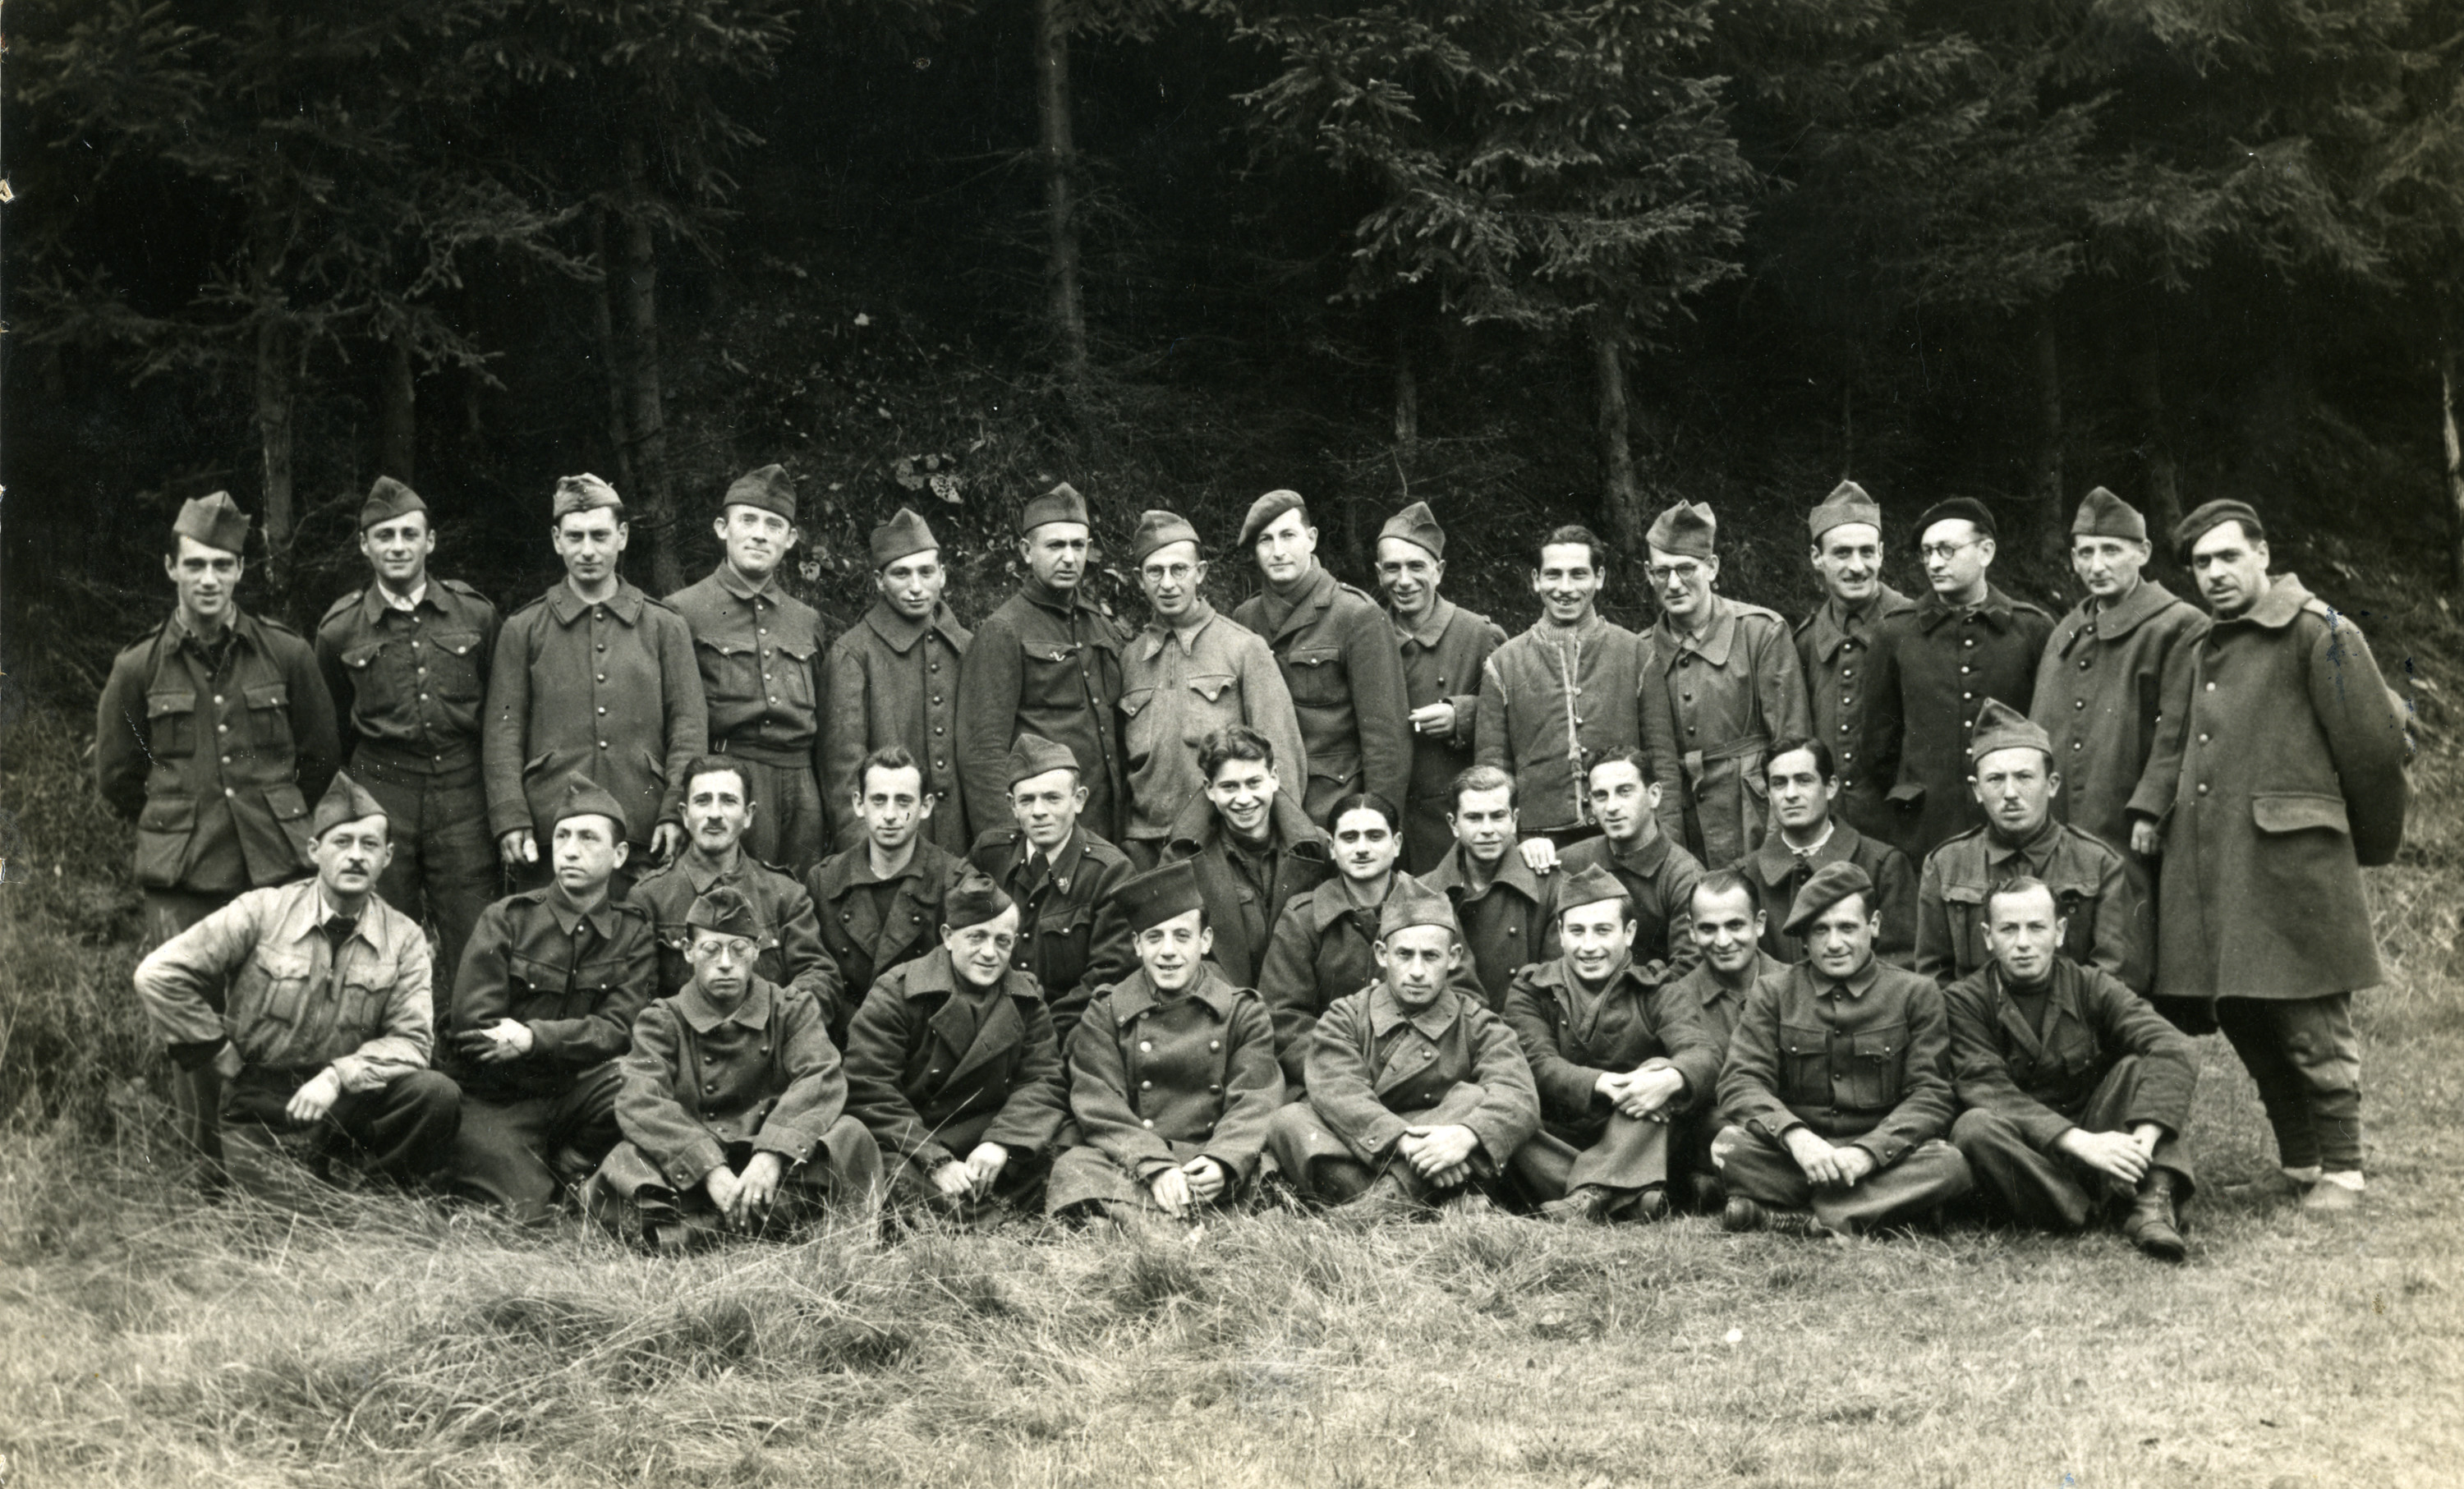 Yaakov (Jean) Ridnik poses with other prisoners in a German prisoner of war camp.  He is pictured standing 6th from the left in the top row.